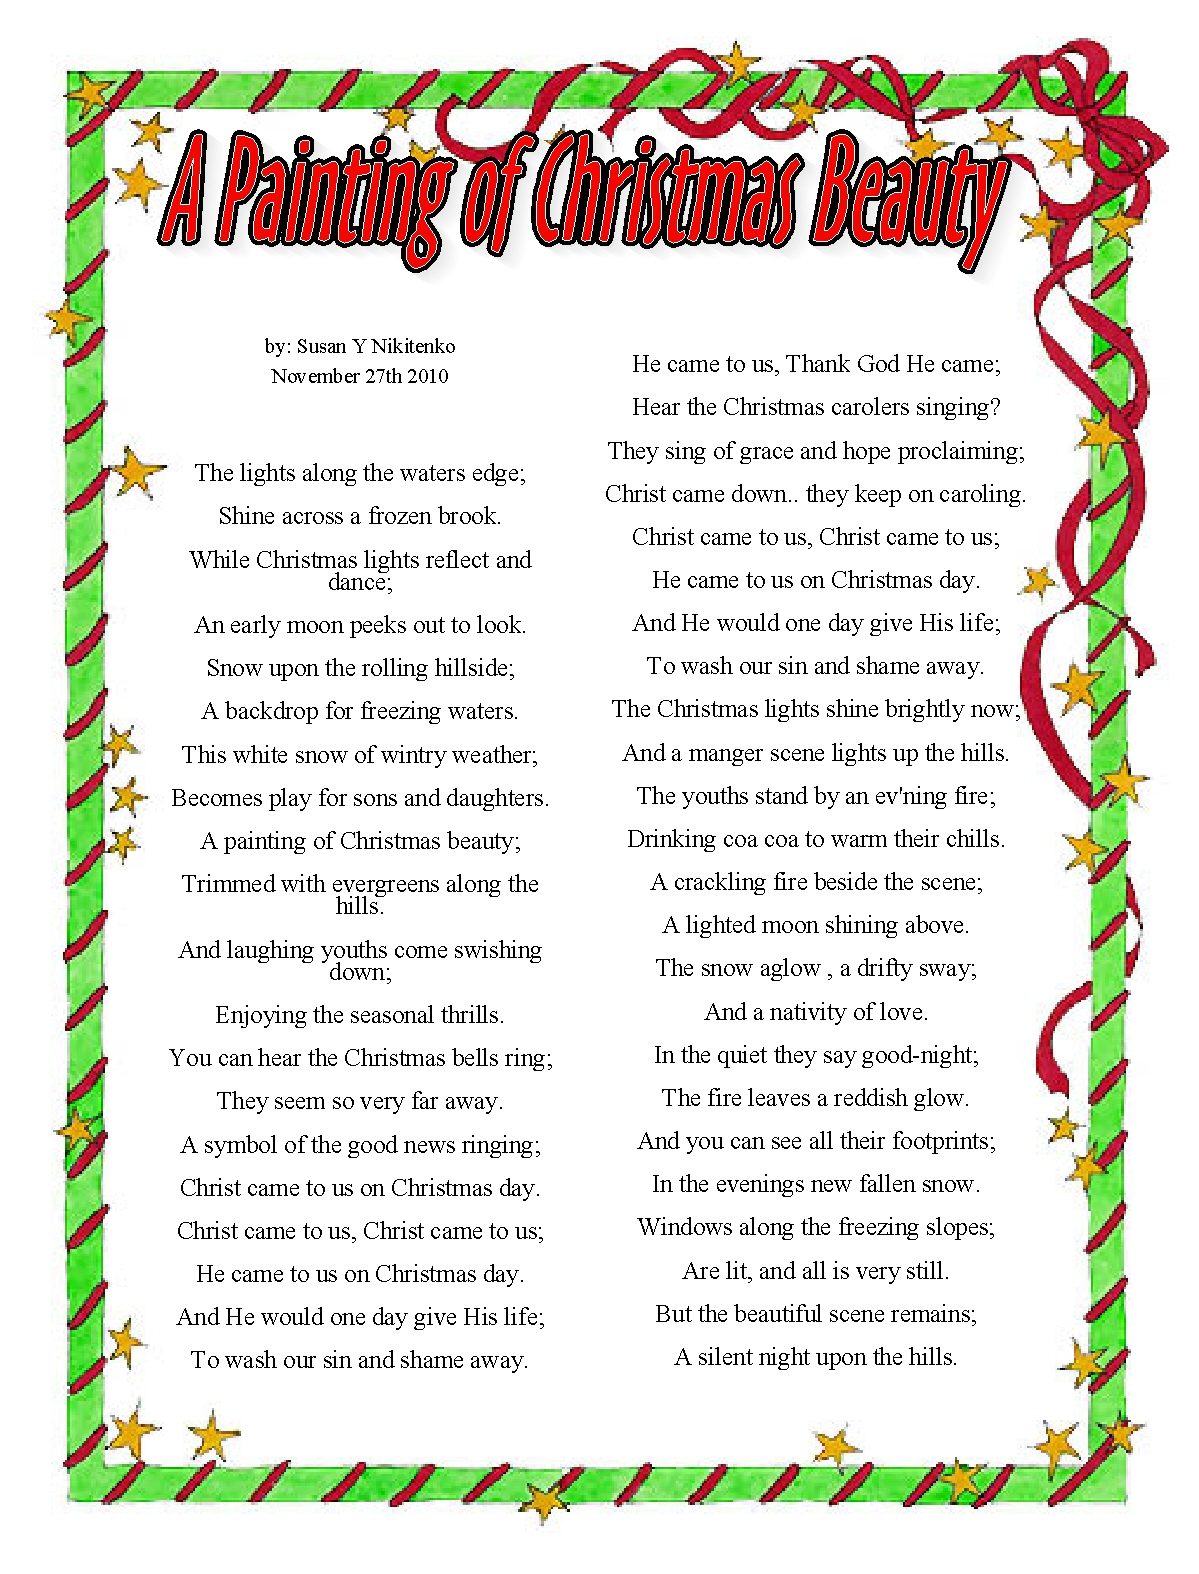 Short Christmas Poems For Church.Christmas Poems For Church Wallpapers Jobs